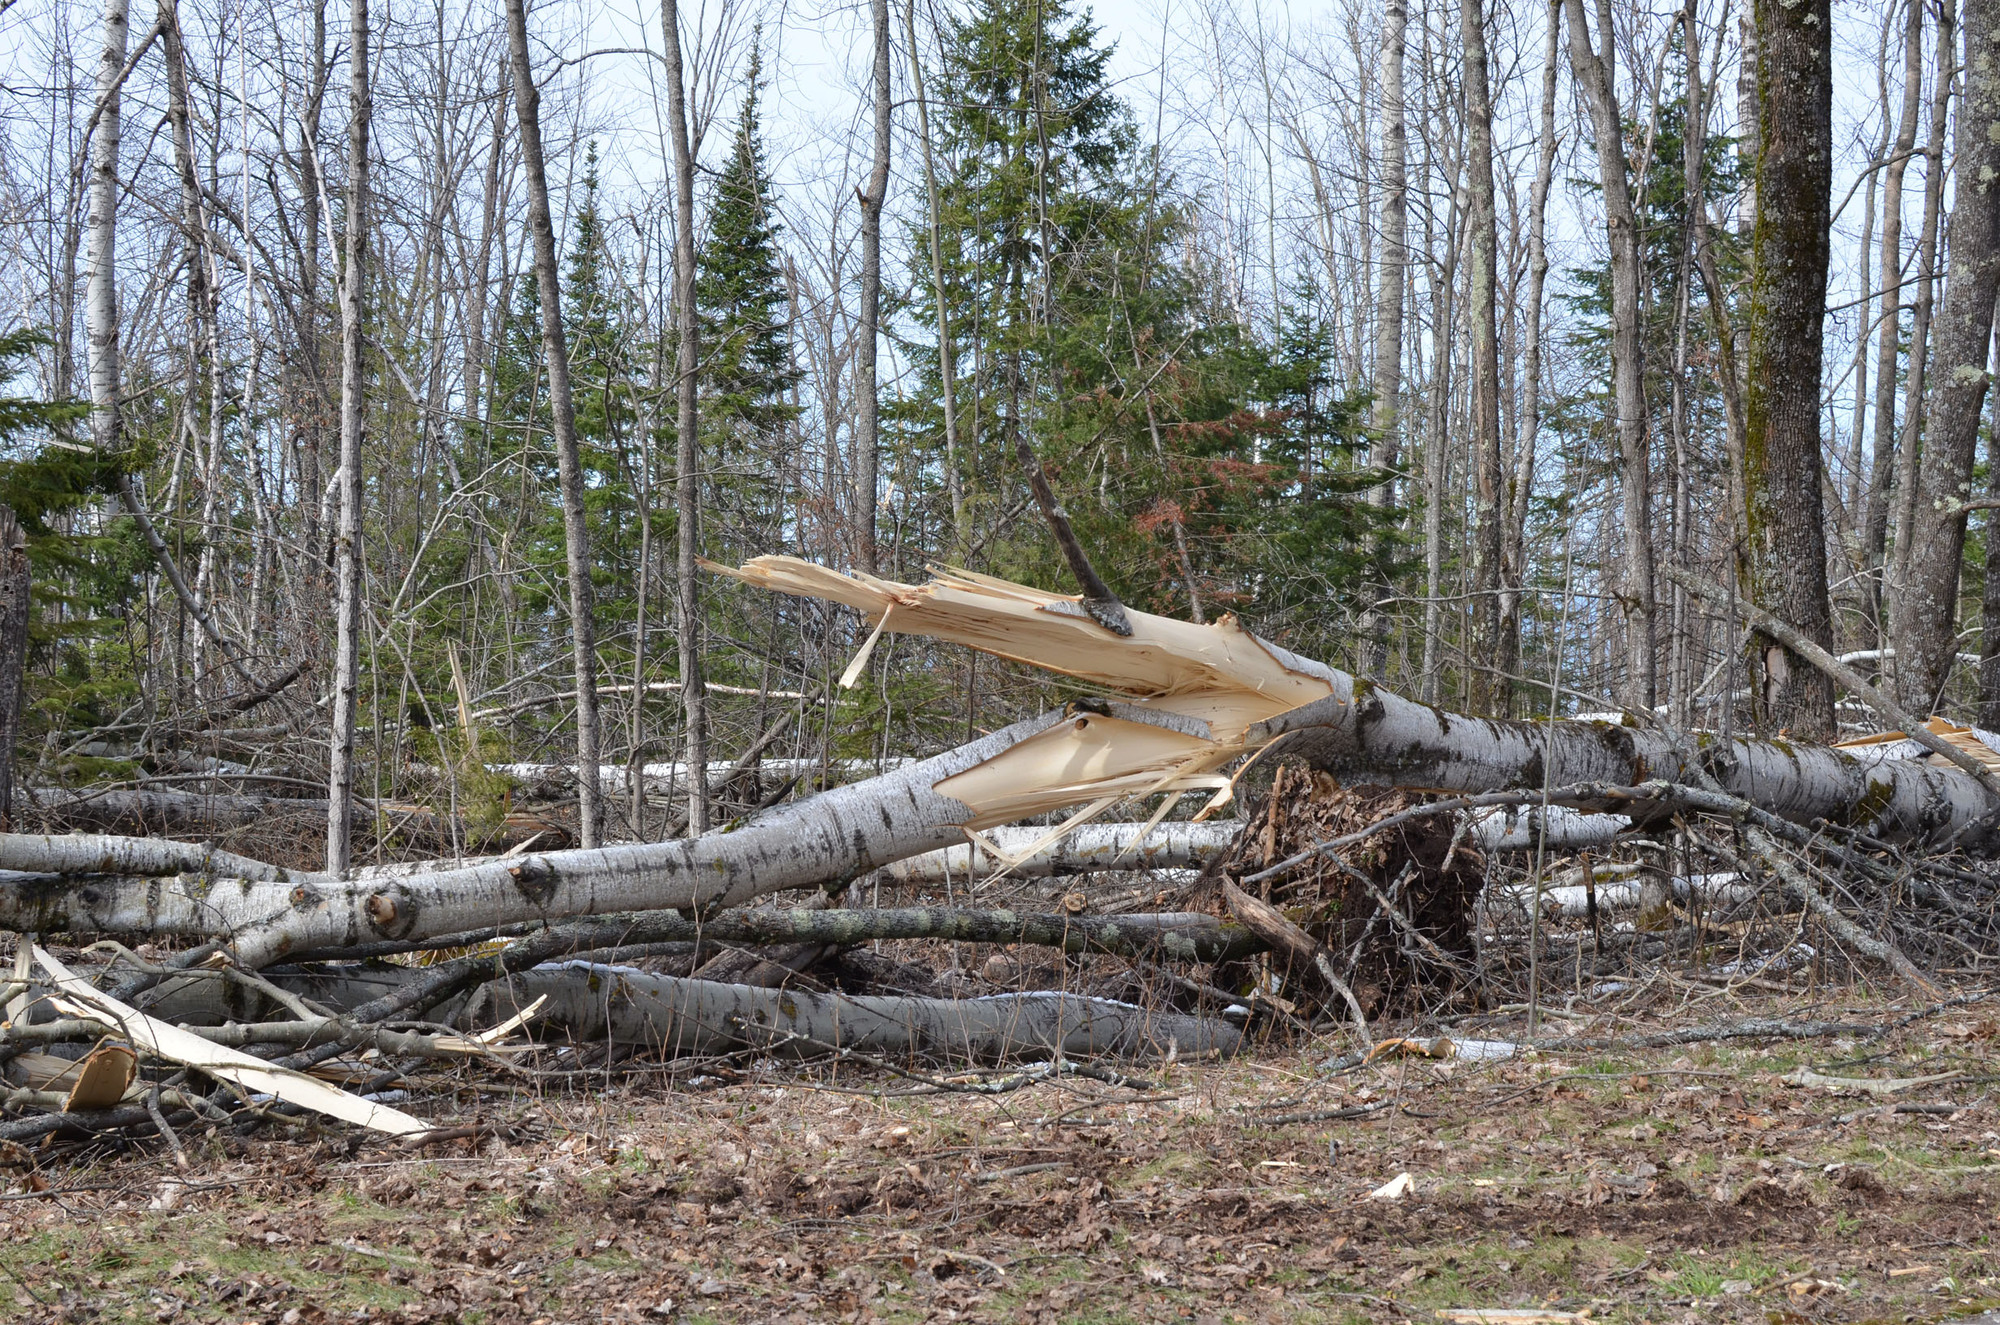 Some of the trees twisted and felled at Porcupine Mountains Wilderness State